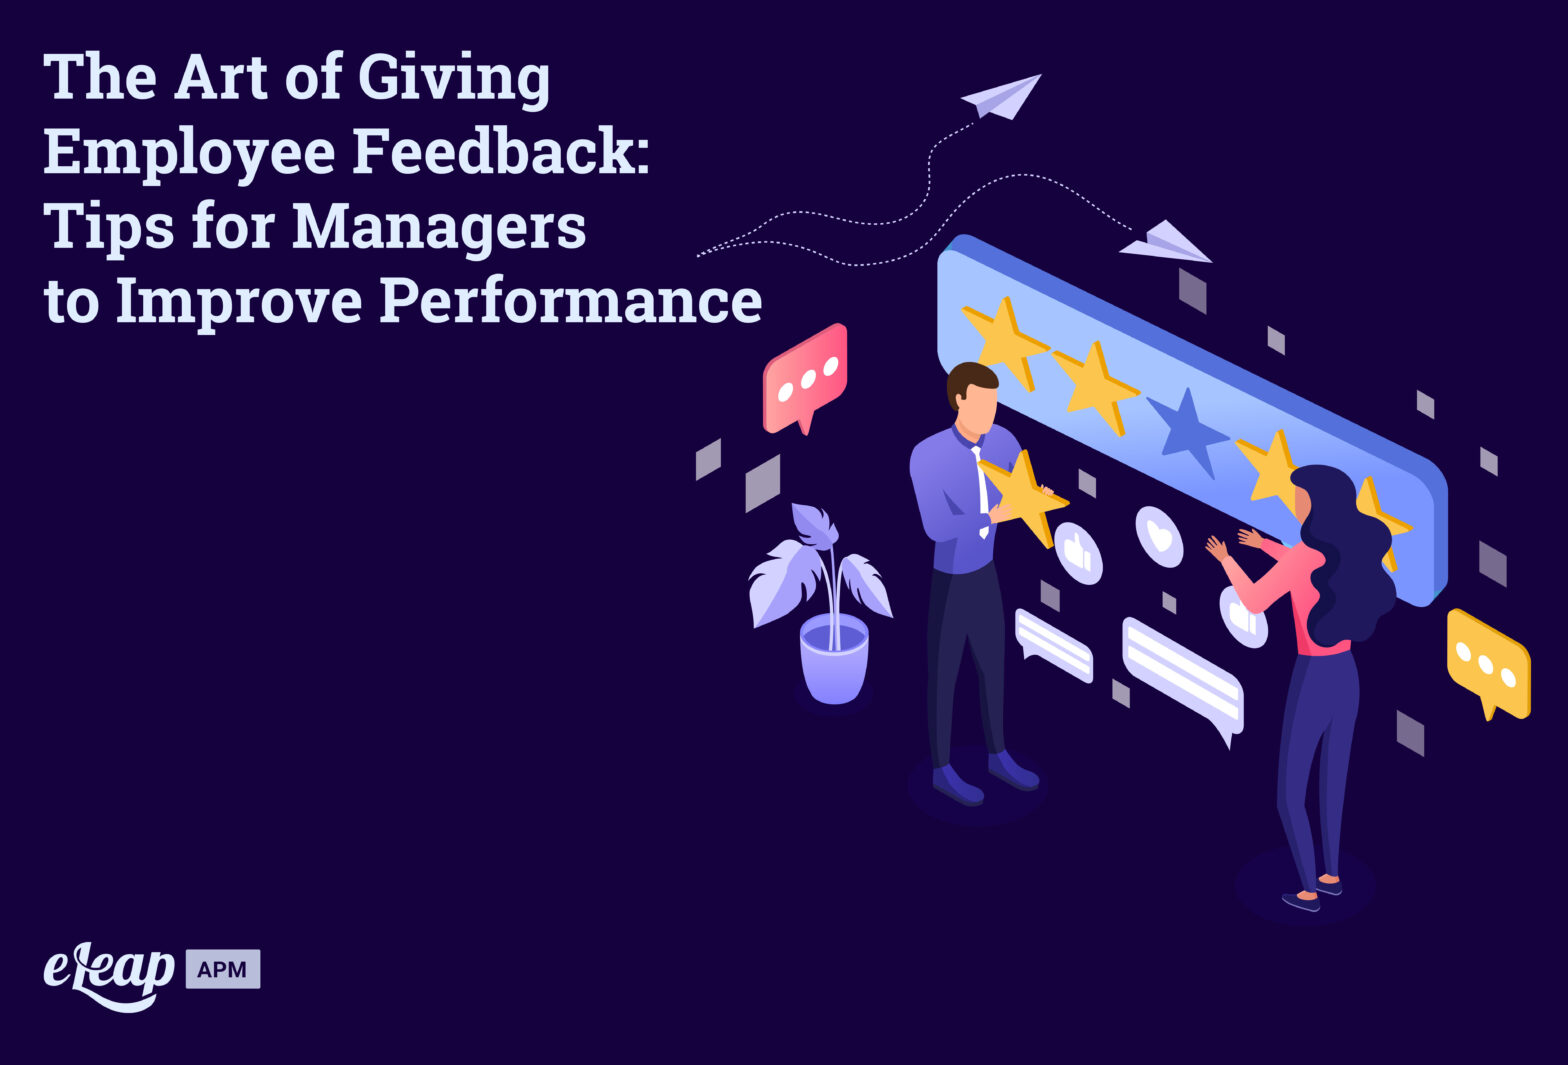 The Art of Giving Employee Feedback: Tips for Managers to Improve Performance